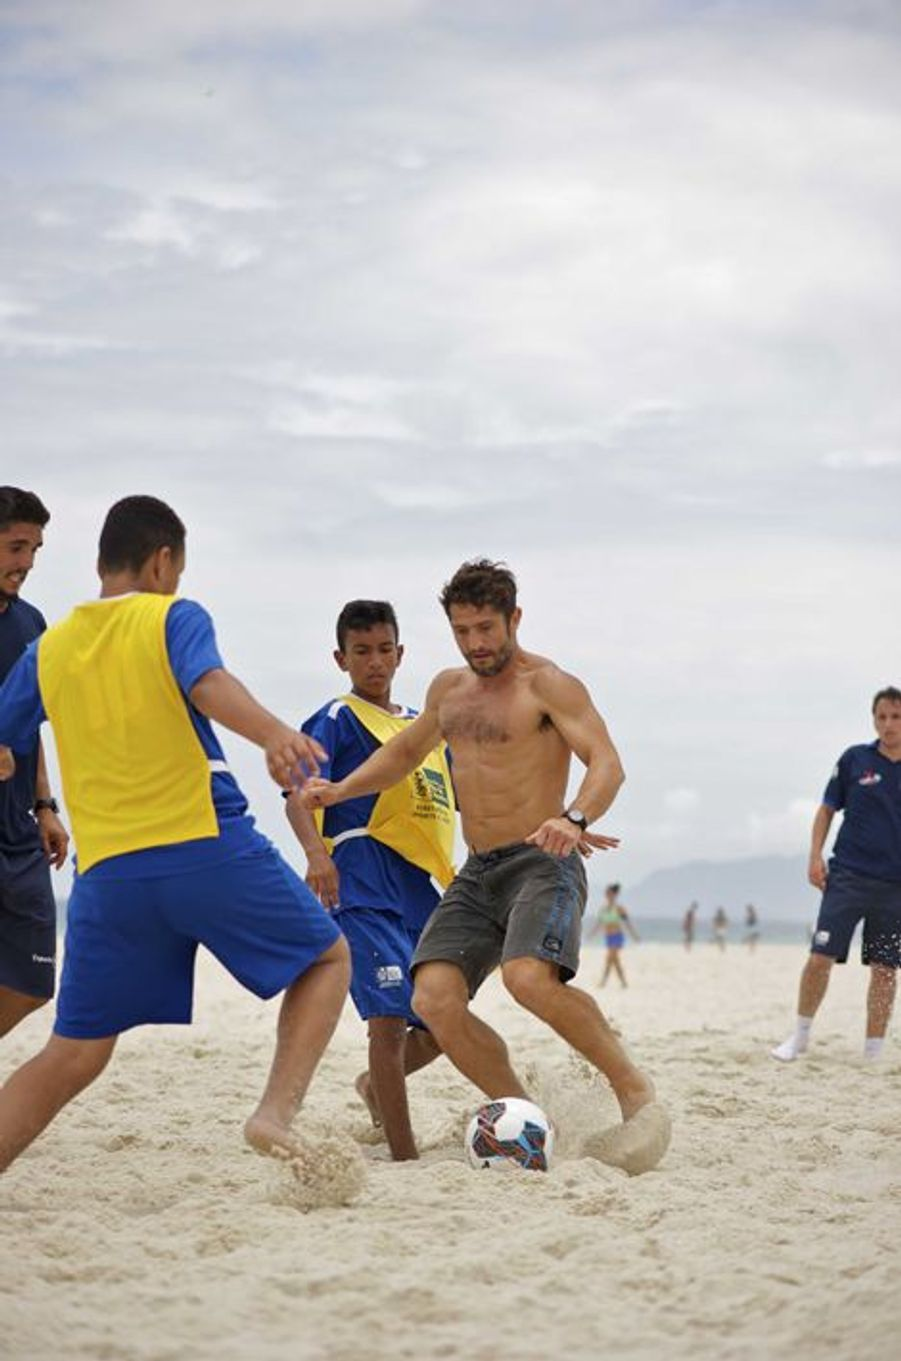 Match de foot improvisé sur la plage de Barra